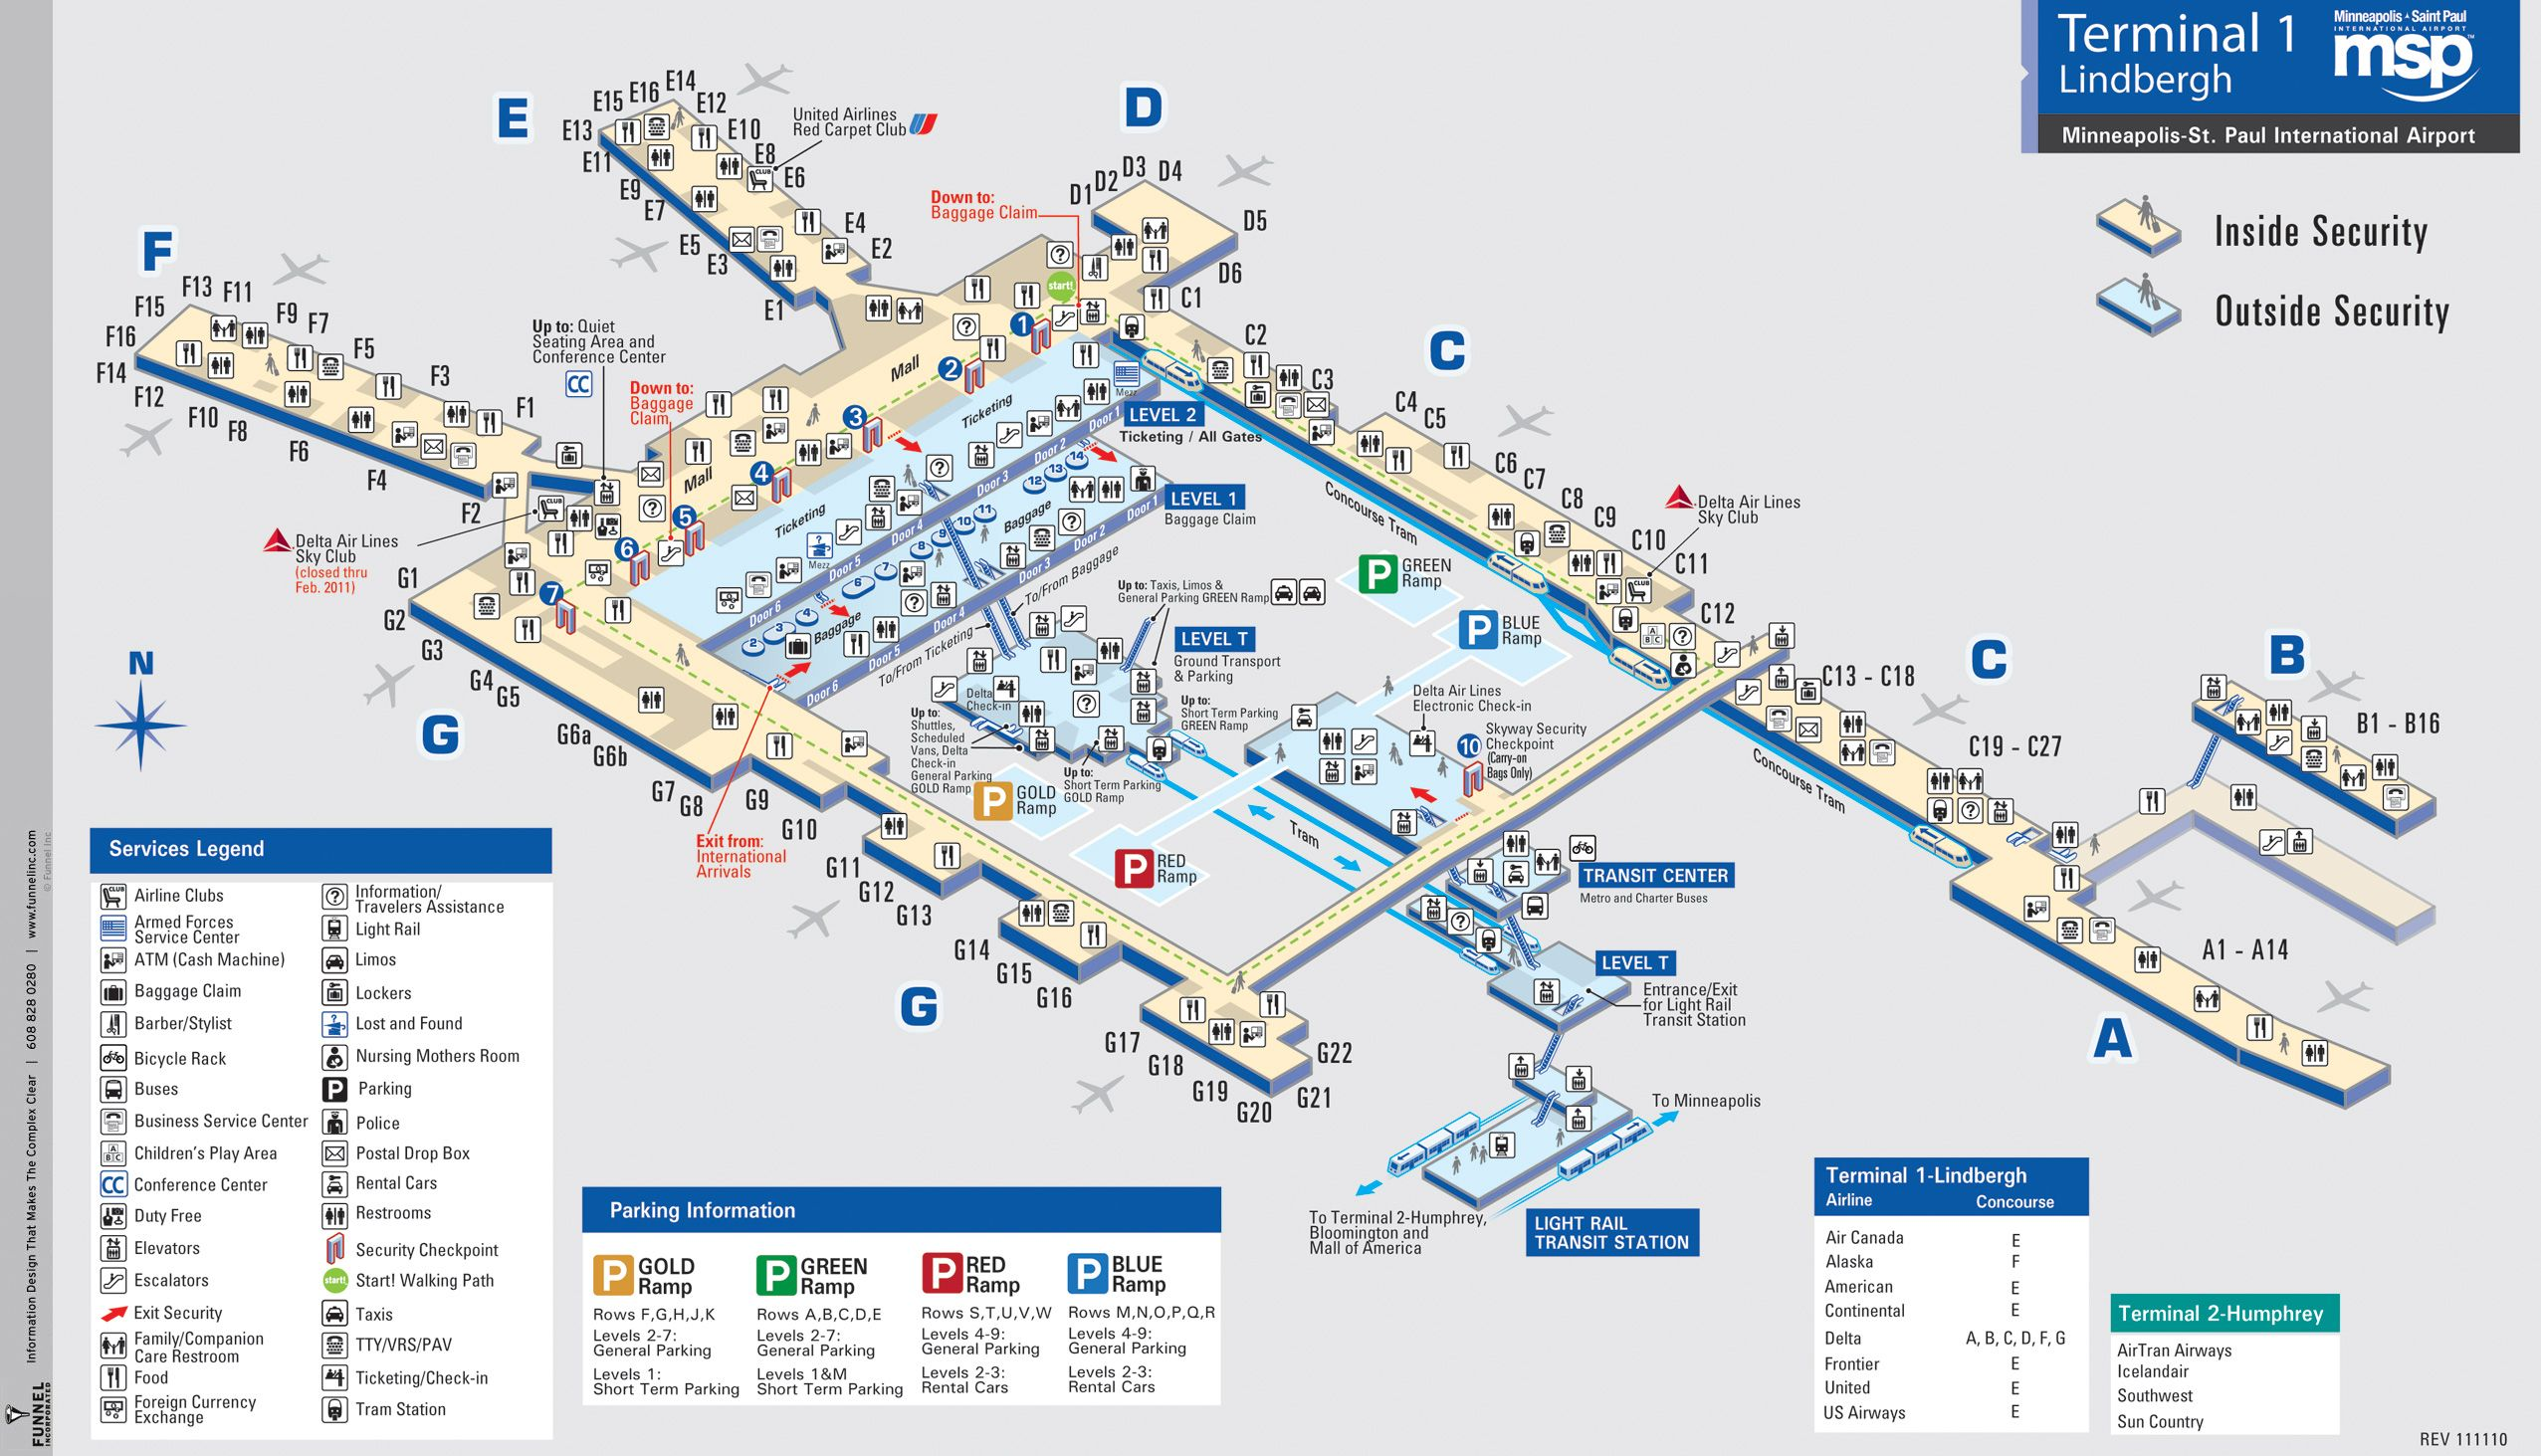 Airport Map of Minneapolis St Paul International Airport Terminal